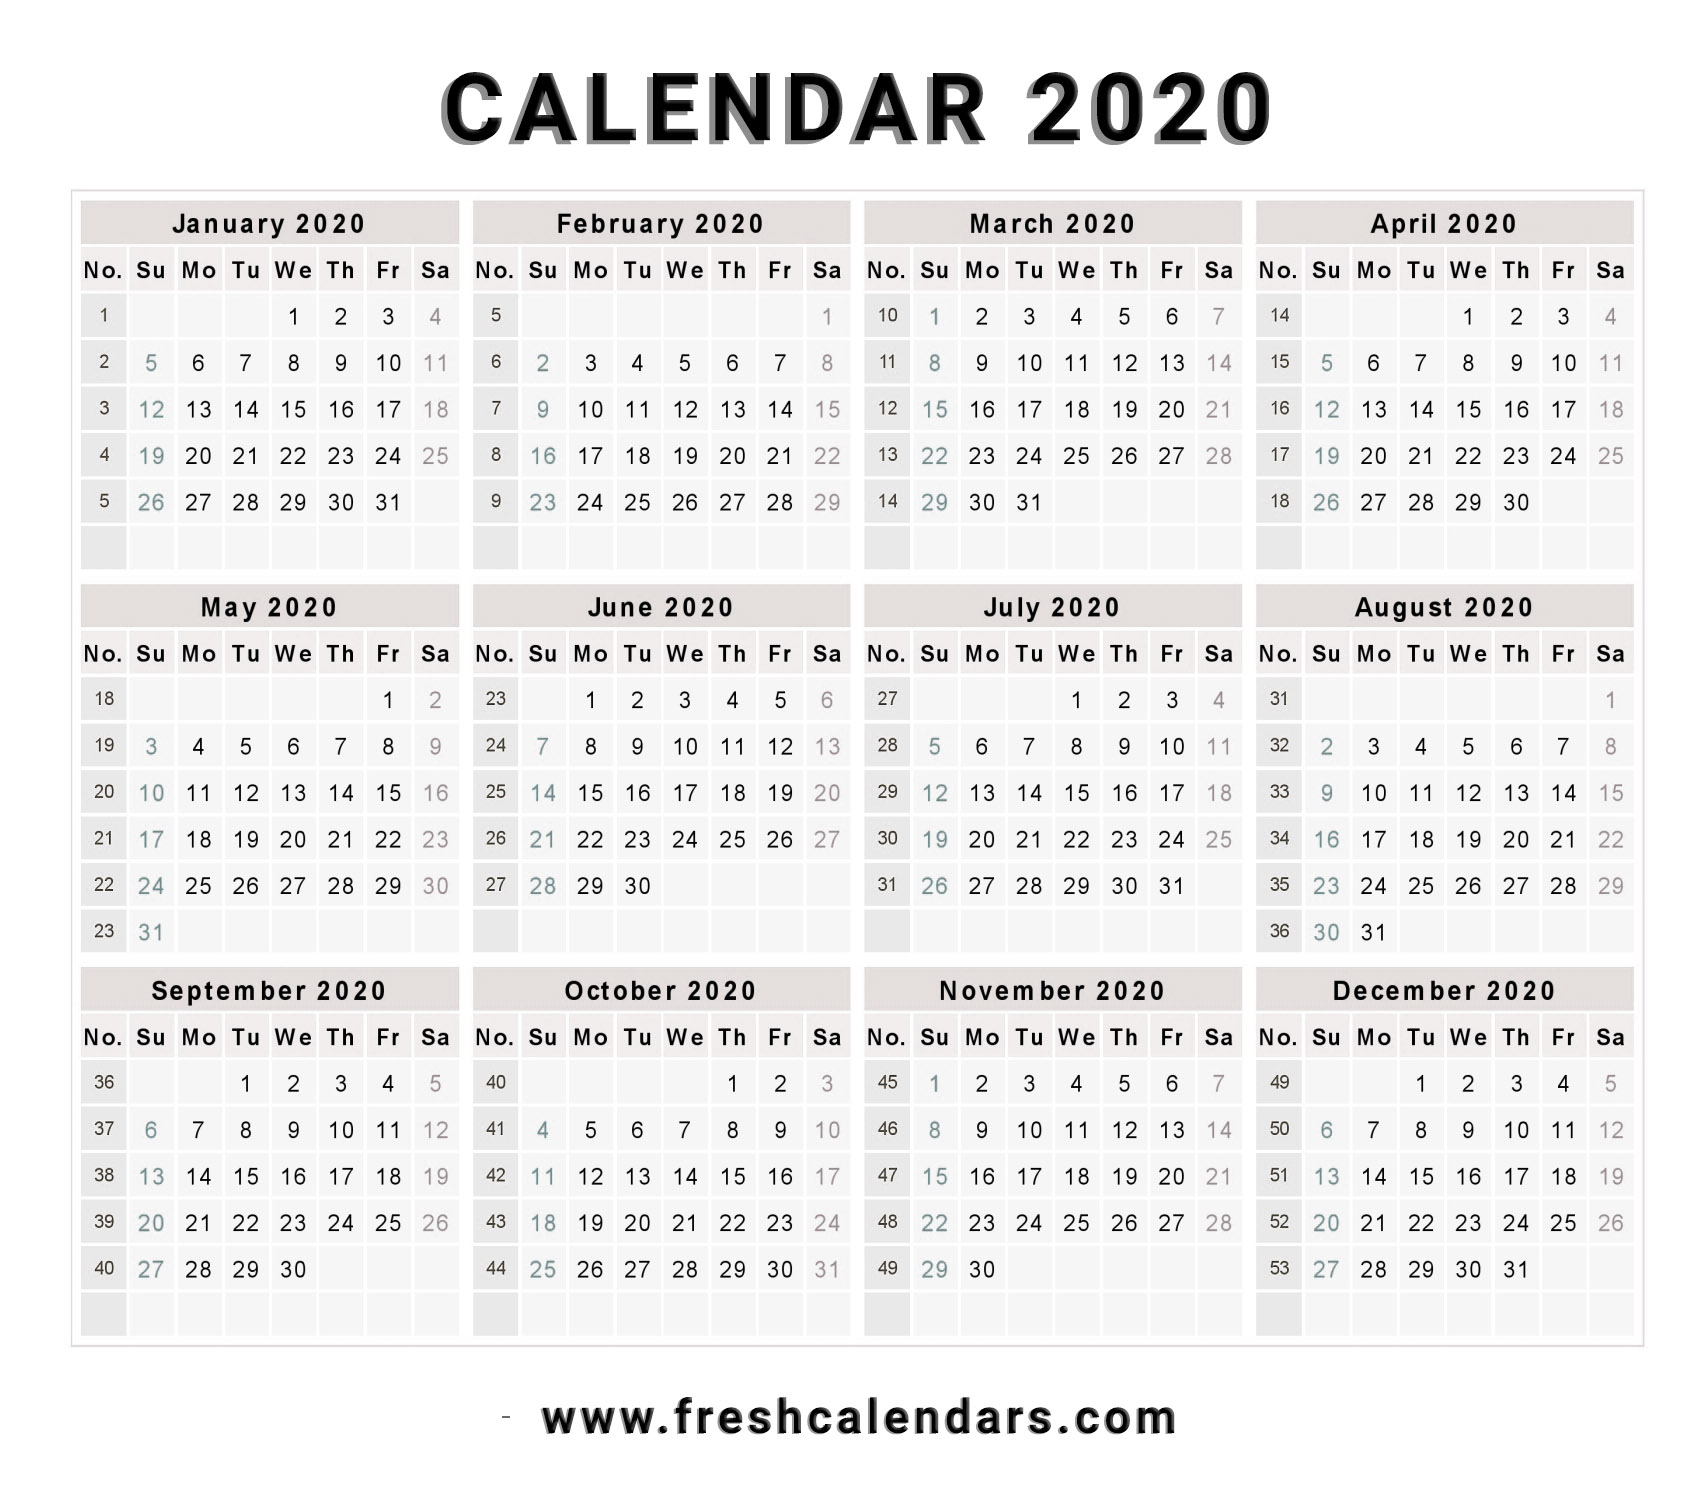 2020 Calendar with Free Calendar 2020 Printable Without Download